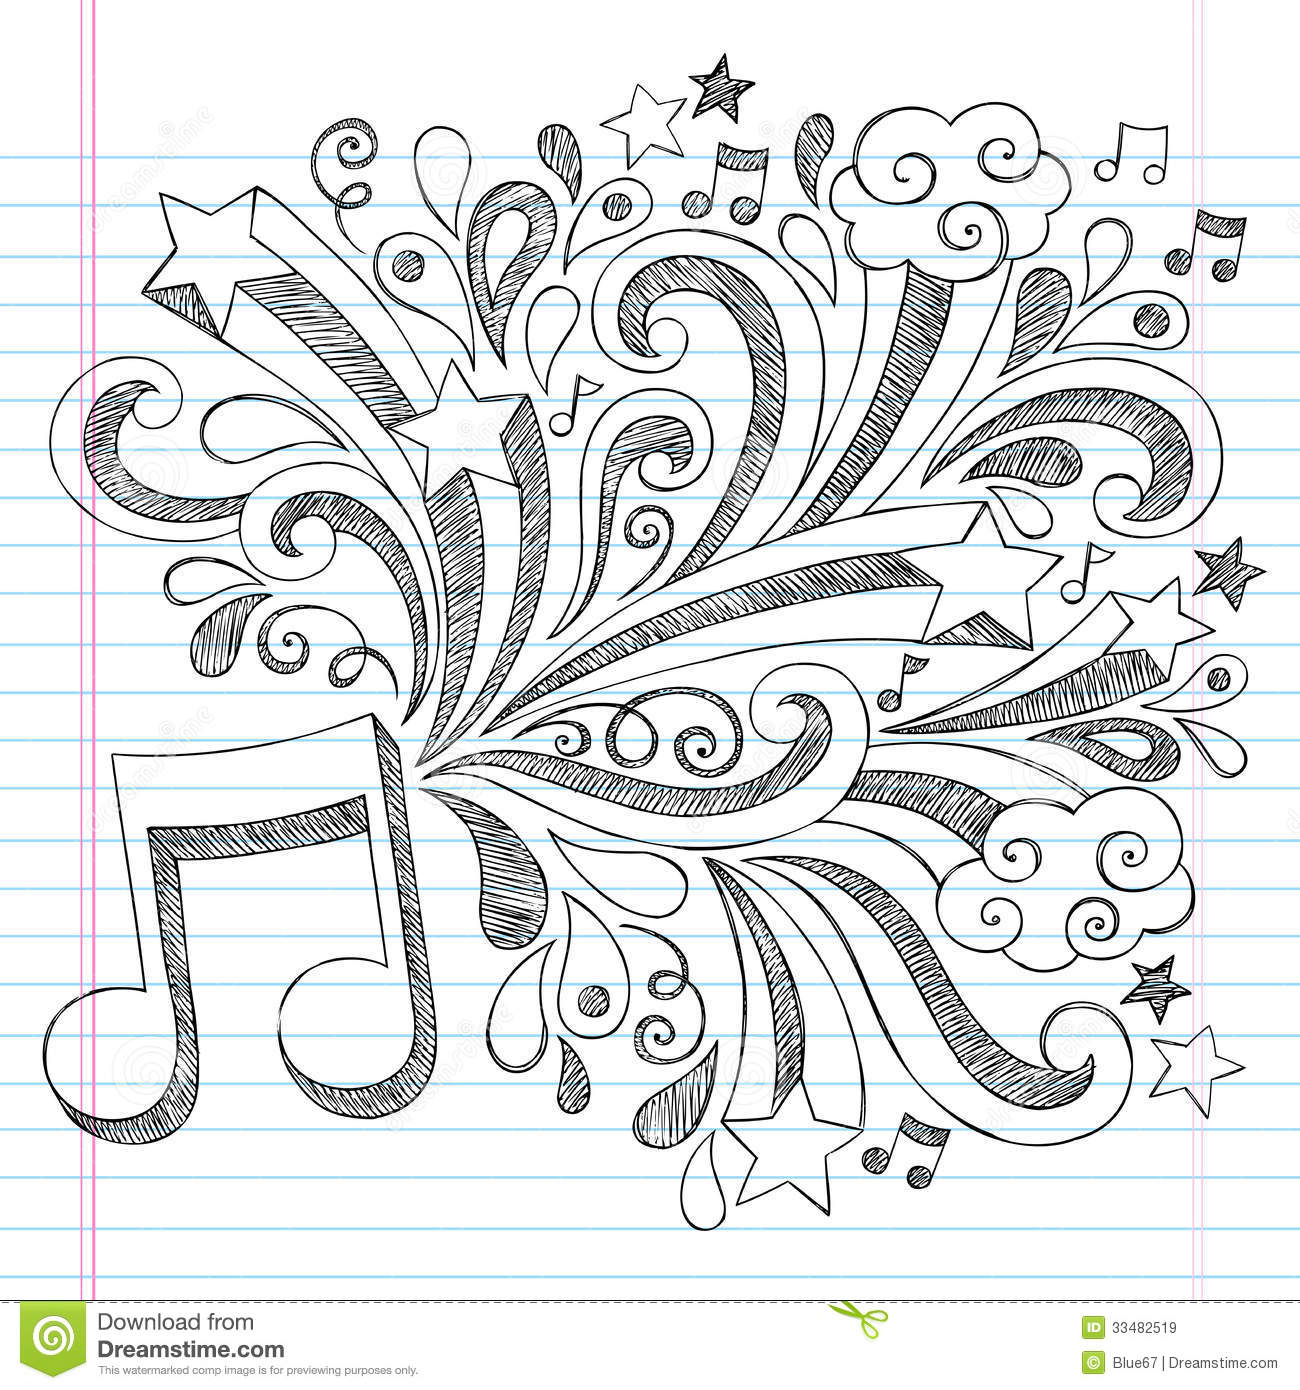 18 Designs Drawn Music Images Music Note Tattoo Drawing Designs